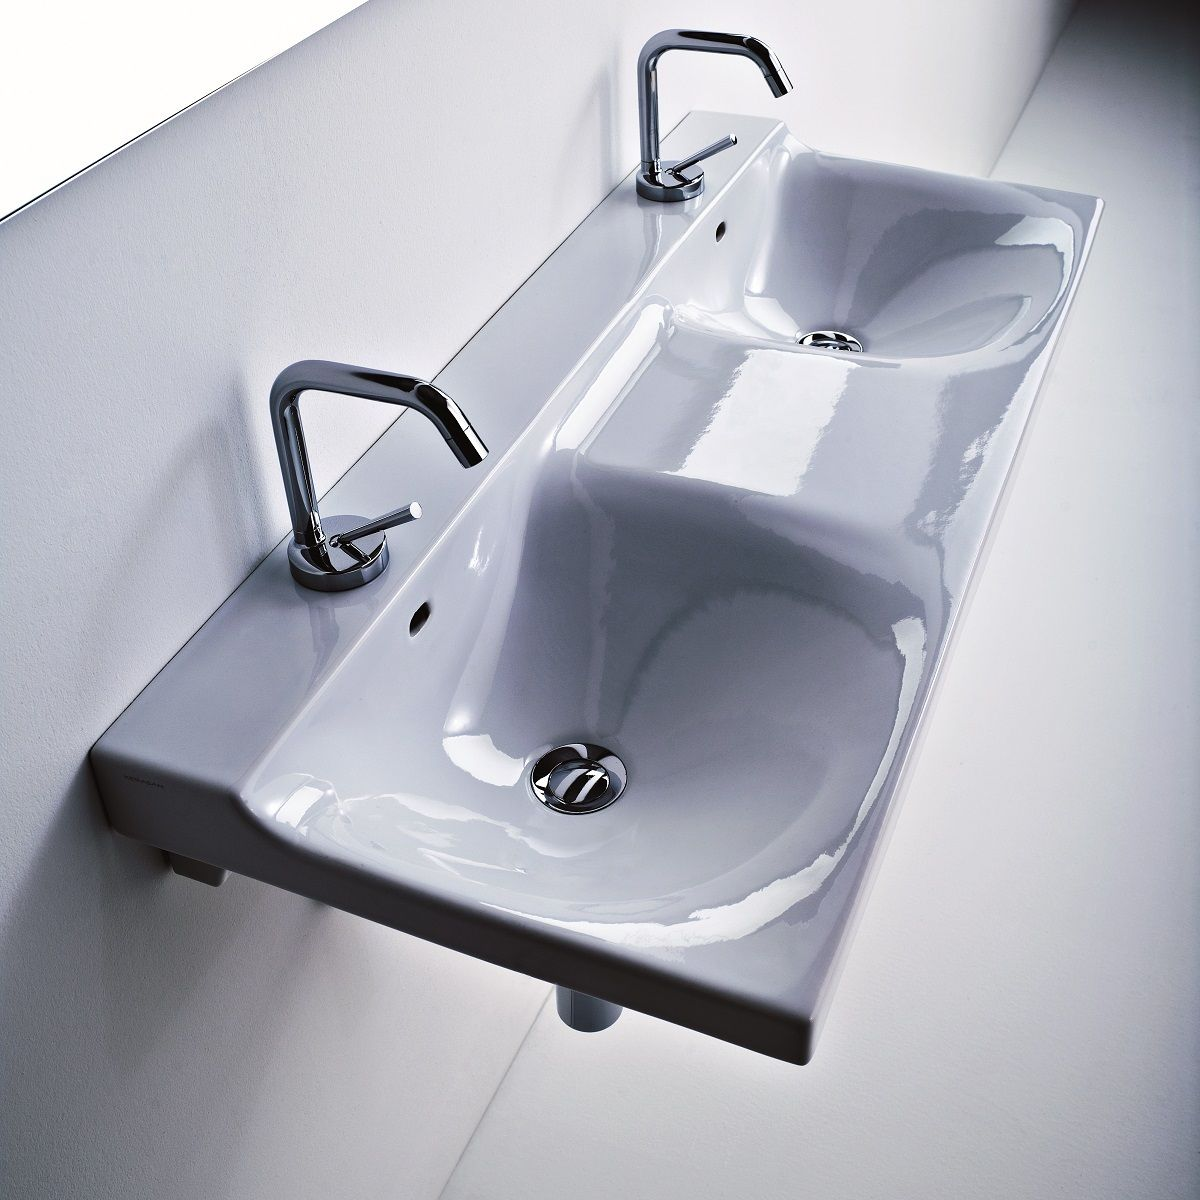 ws bath collections buddy 3404 double wall mounted bathroom sink 39 4 x 16 5